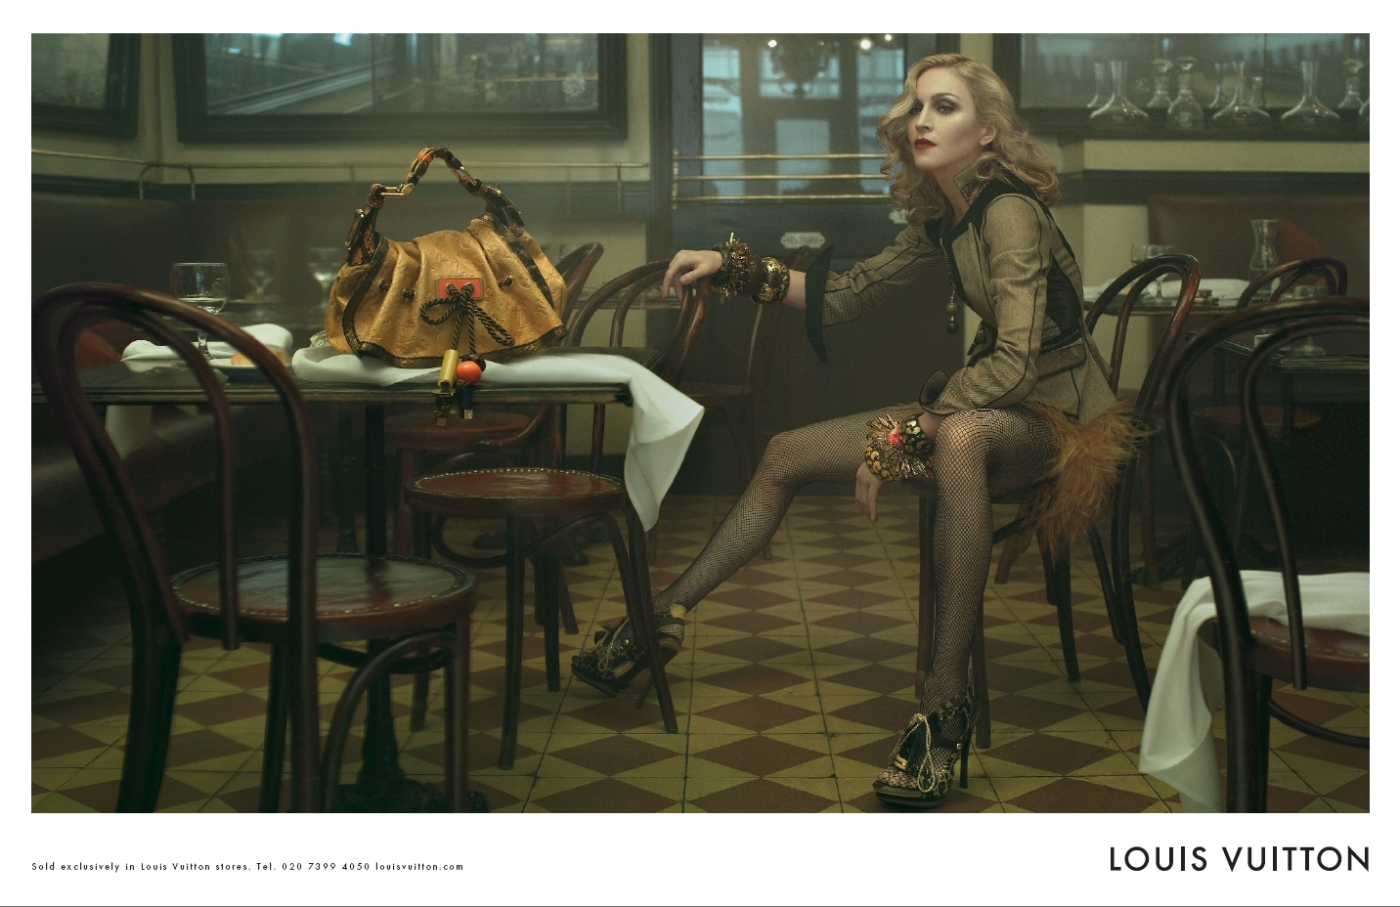 Louis Vuitton – Spring Summer 2008 Campaign